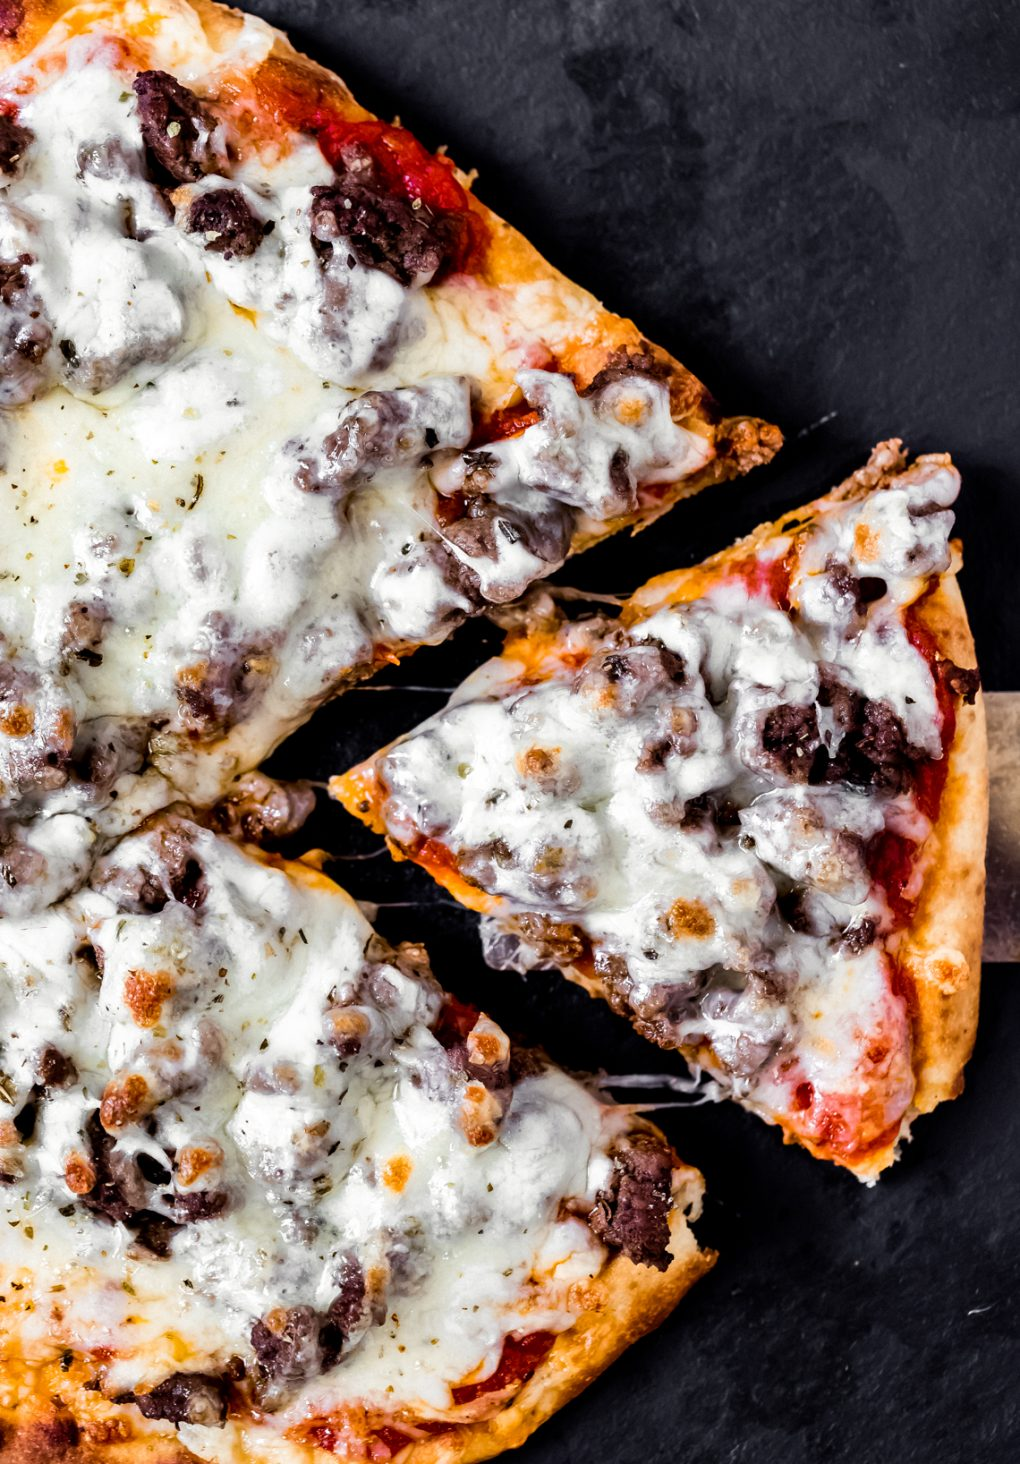 a venison pizza with one slice cut out